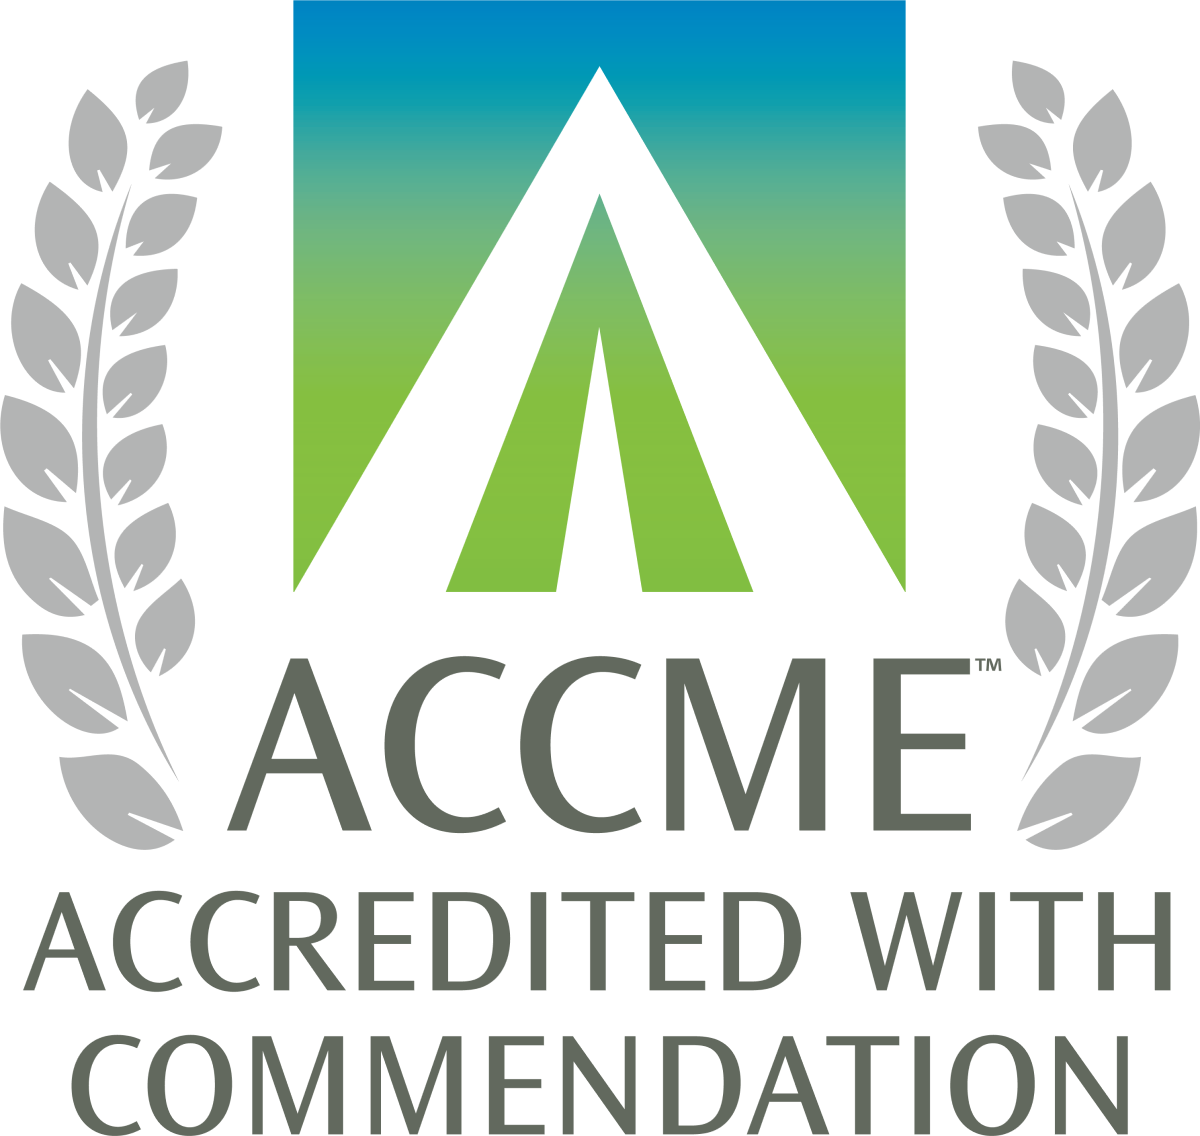 ACCME-commendation-full-color1200